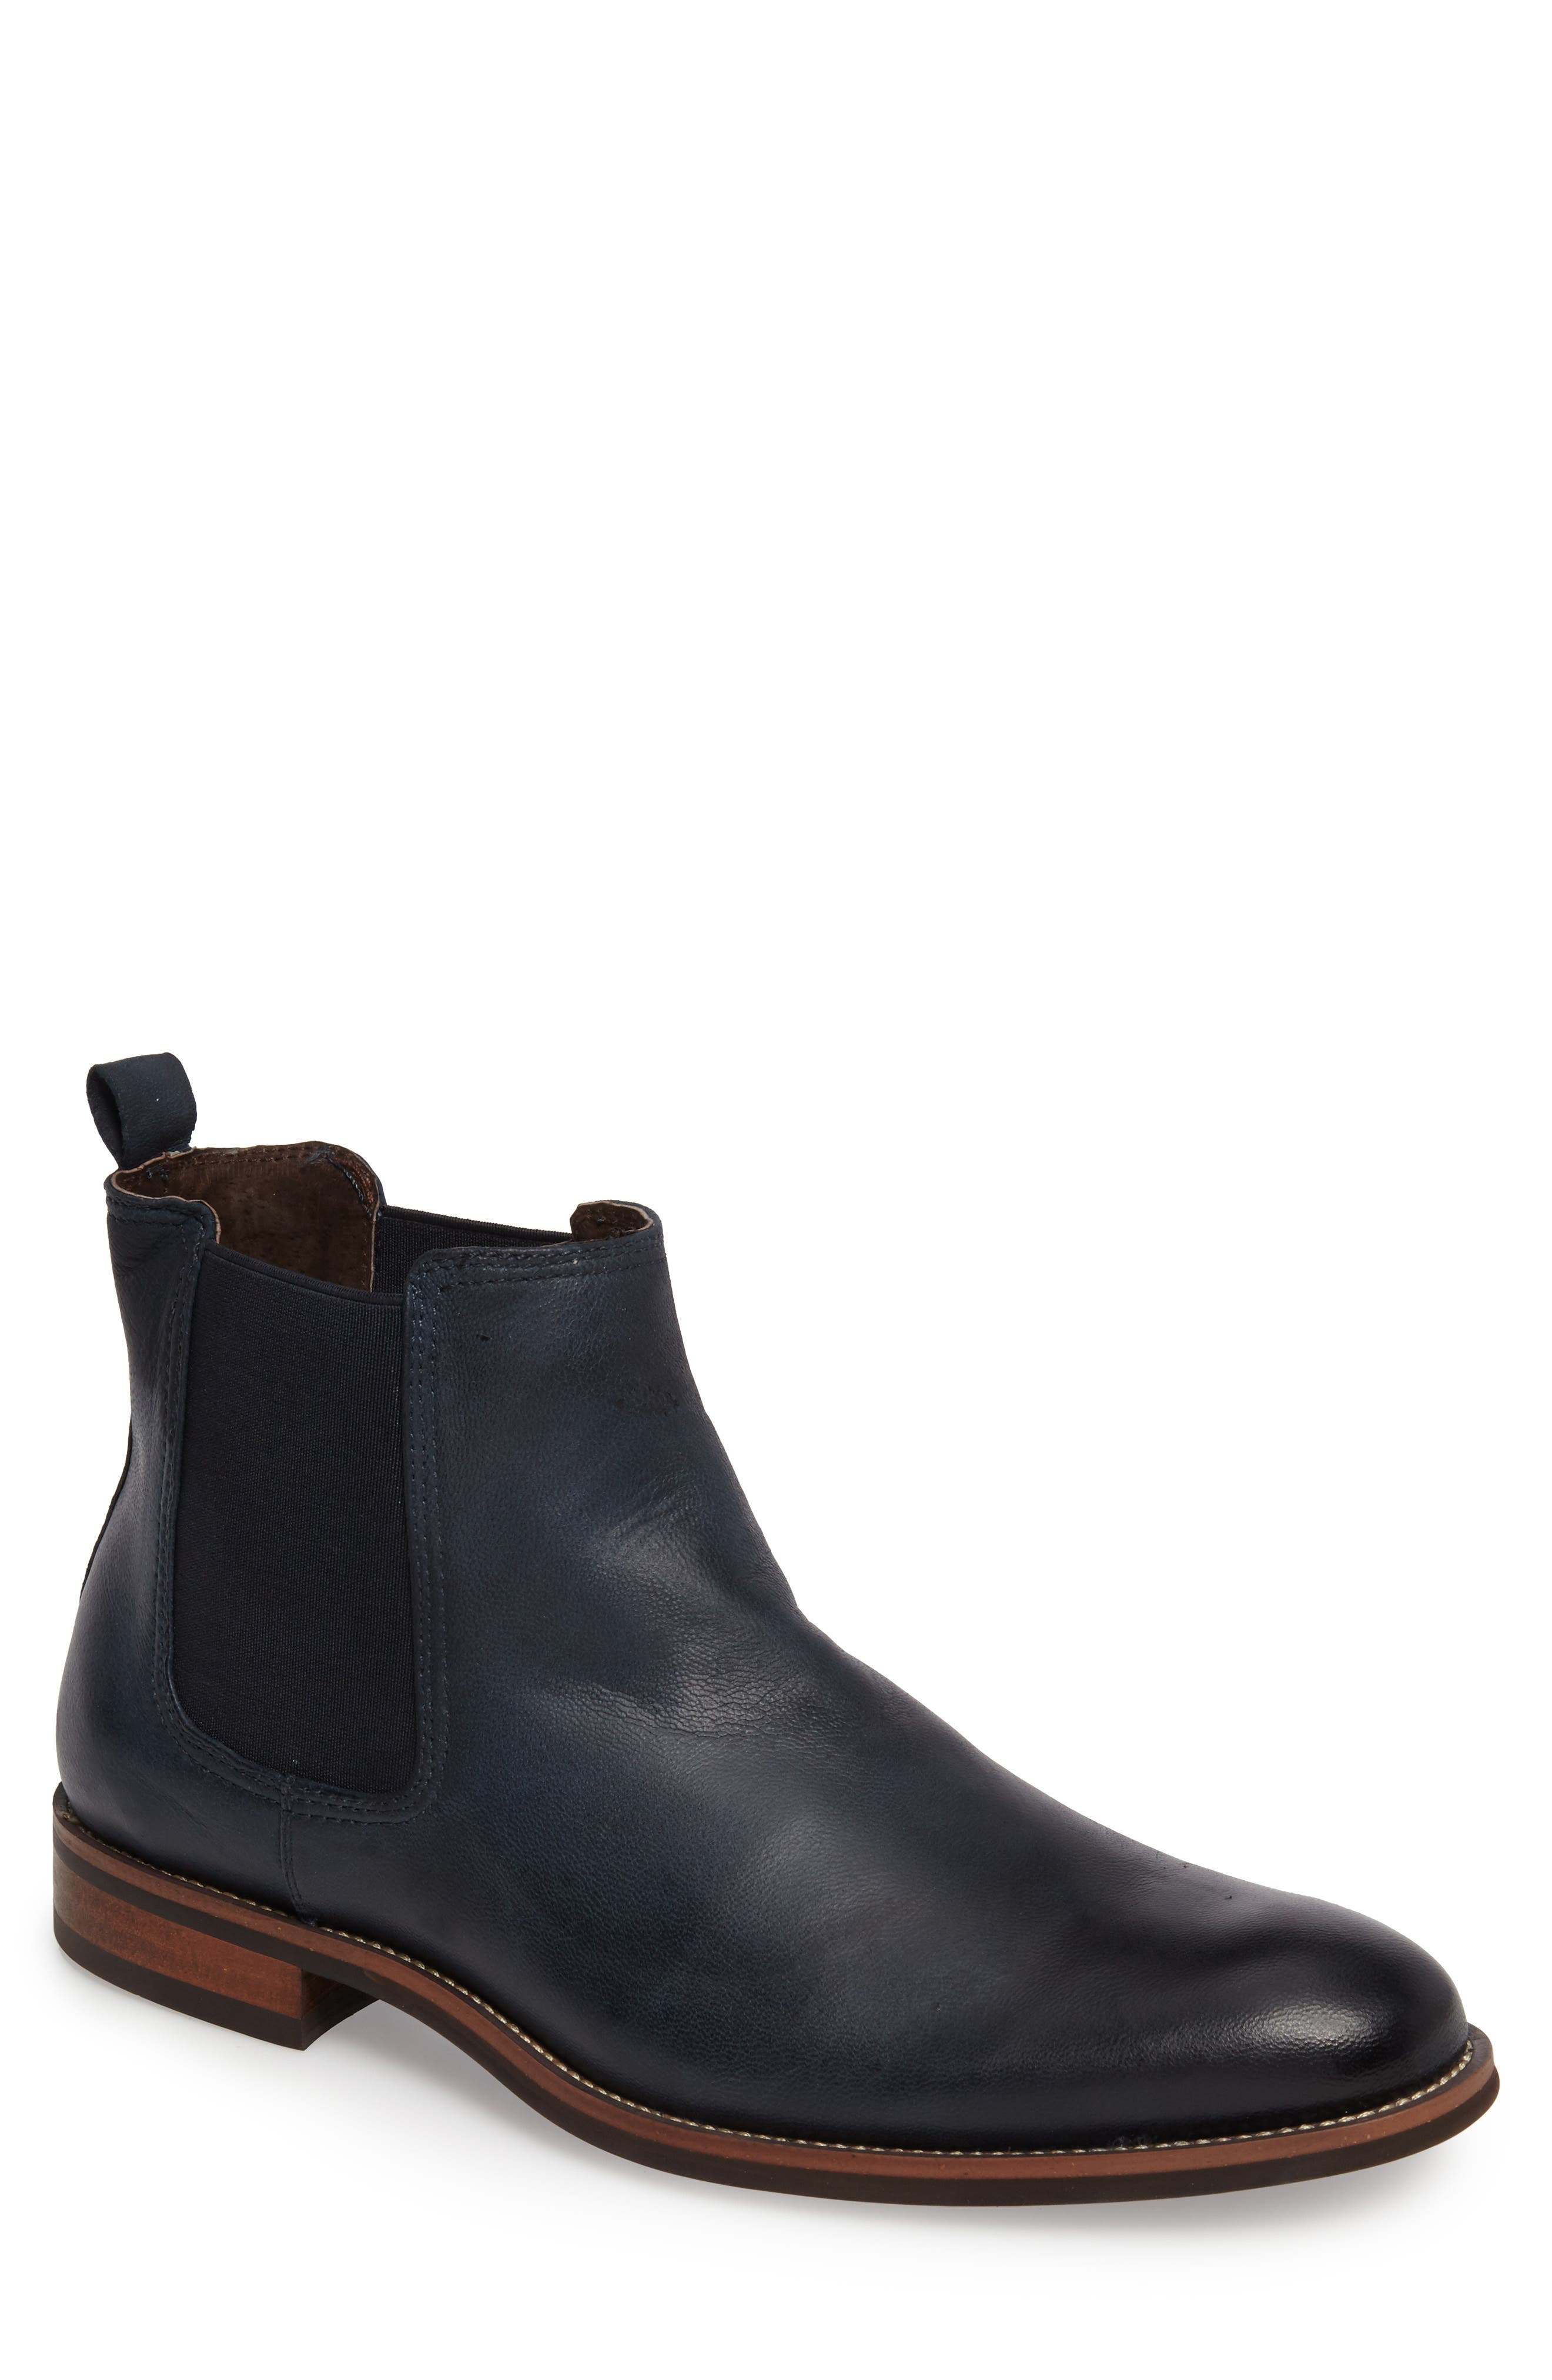 Lawson Chelsea Boot,                         Main,                         color, Navy